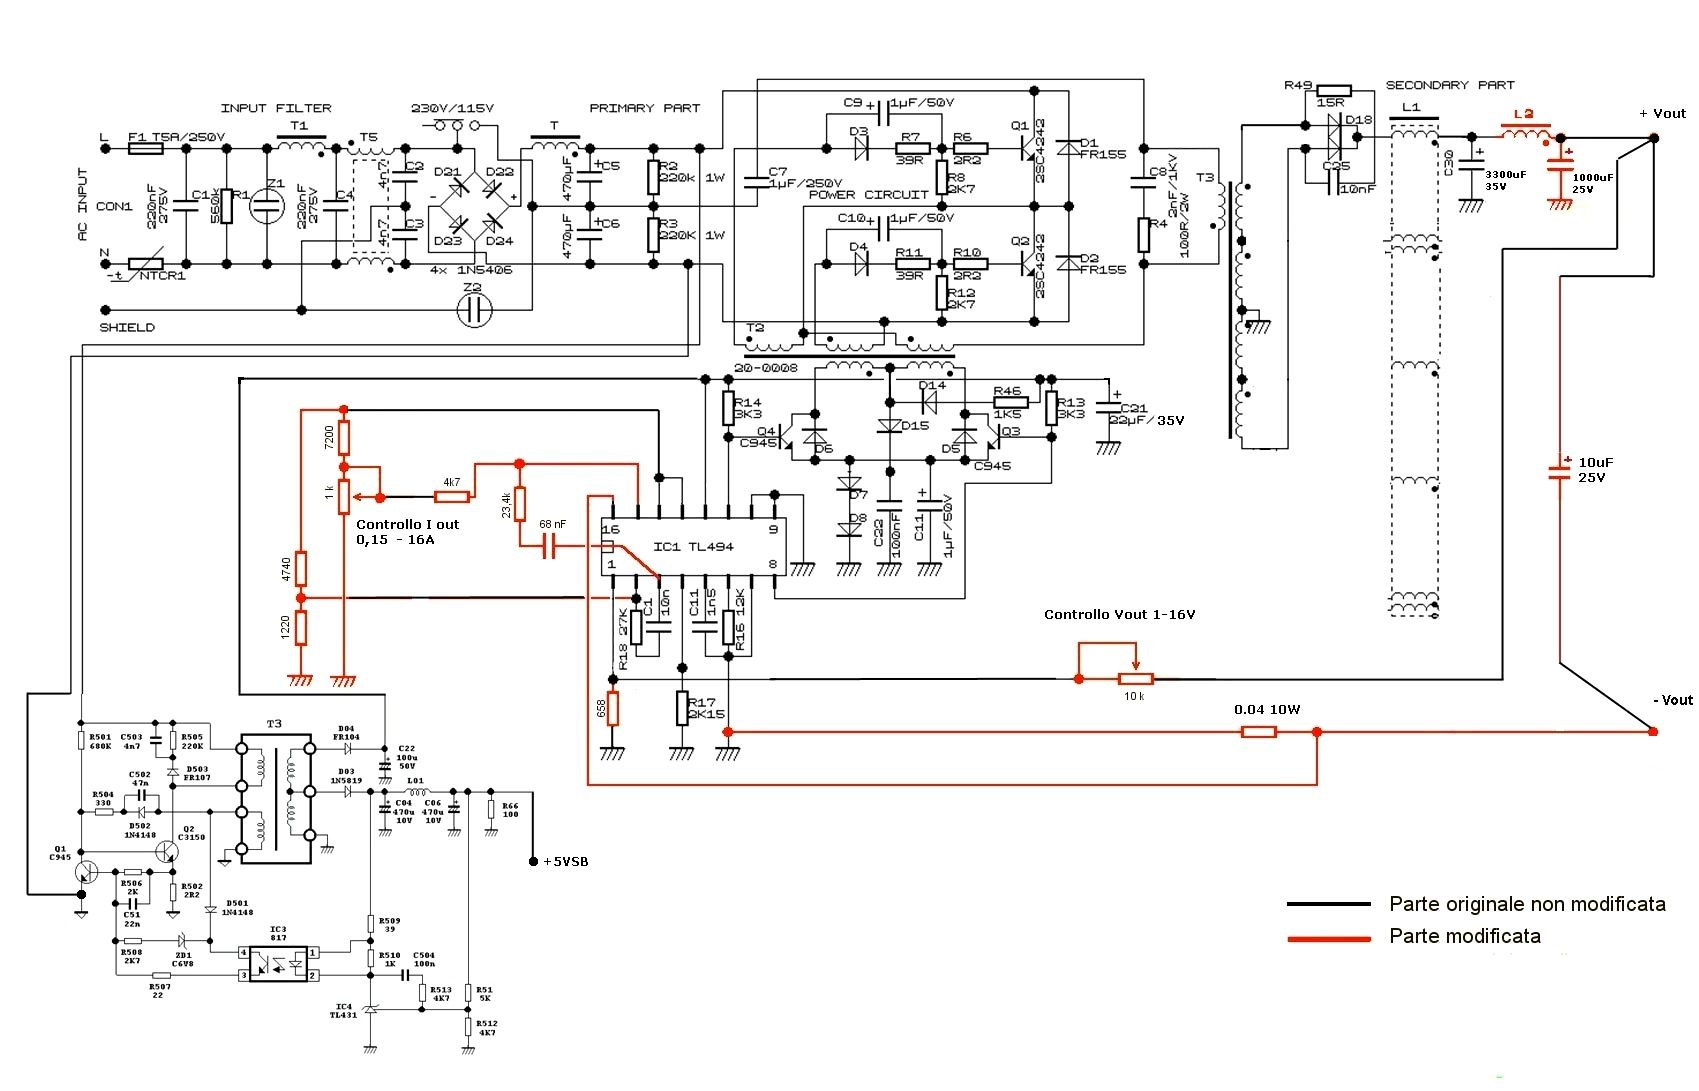 Pc Switching Power Supply Schematic Using Tl494lm339 Ic 2003 Amp Computer Diagram Wiring Library Component Assist Me In Designing A High